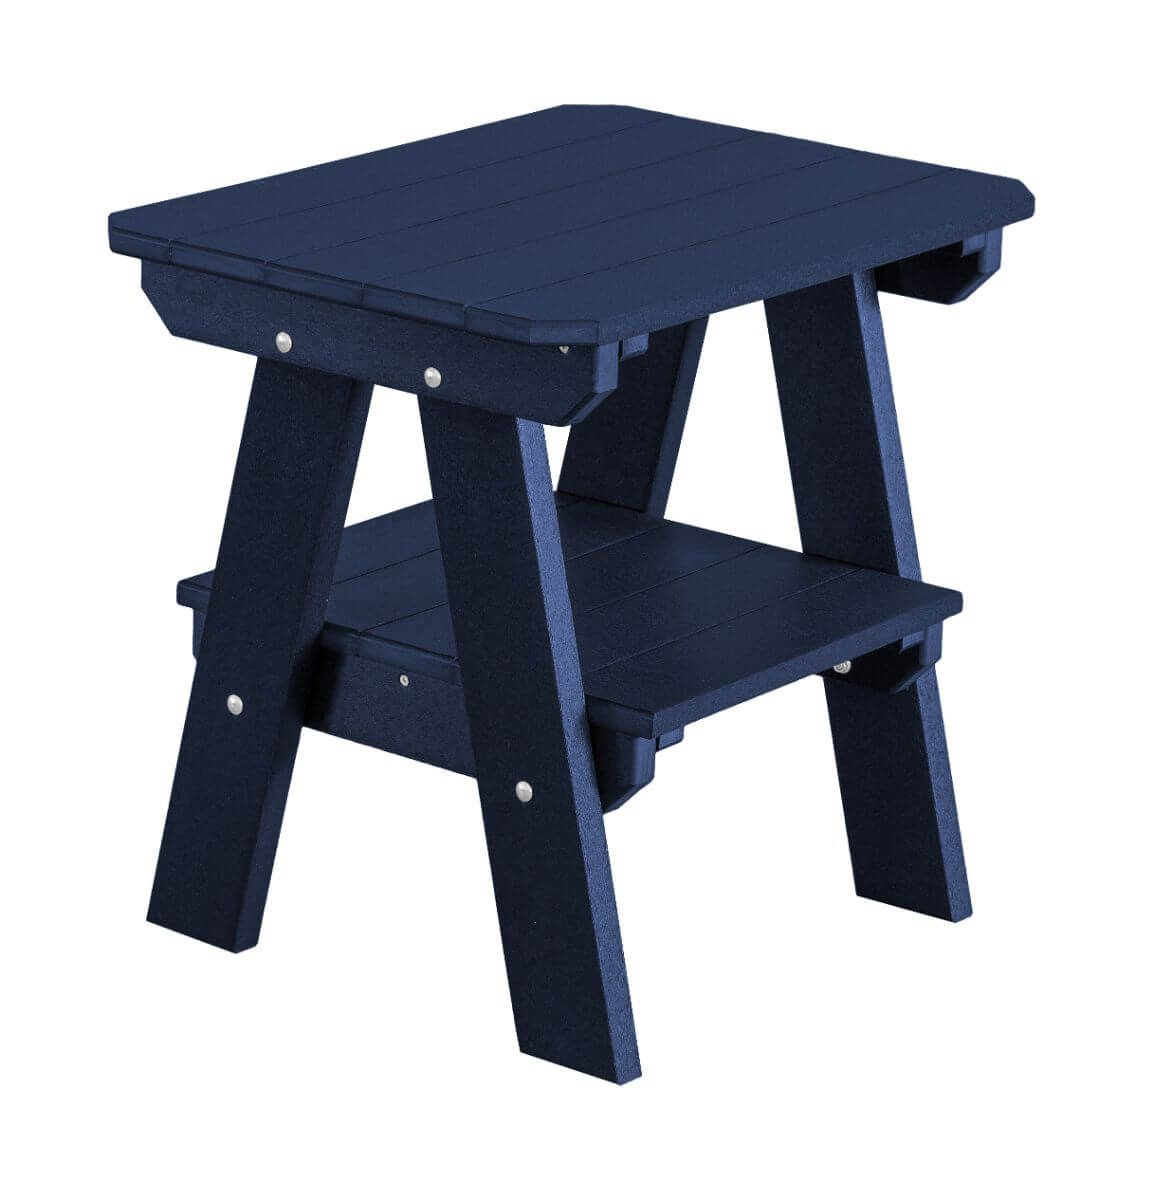 Patriot Blue Sidra Outdoor End Table